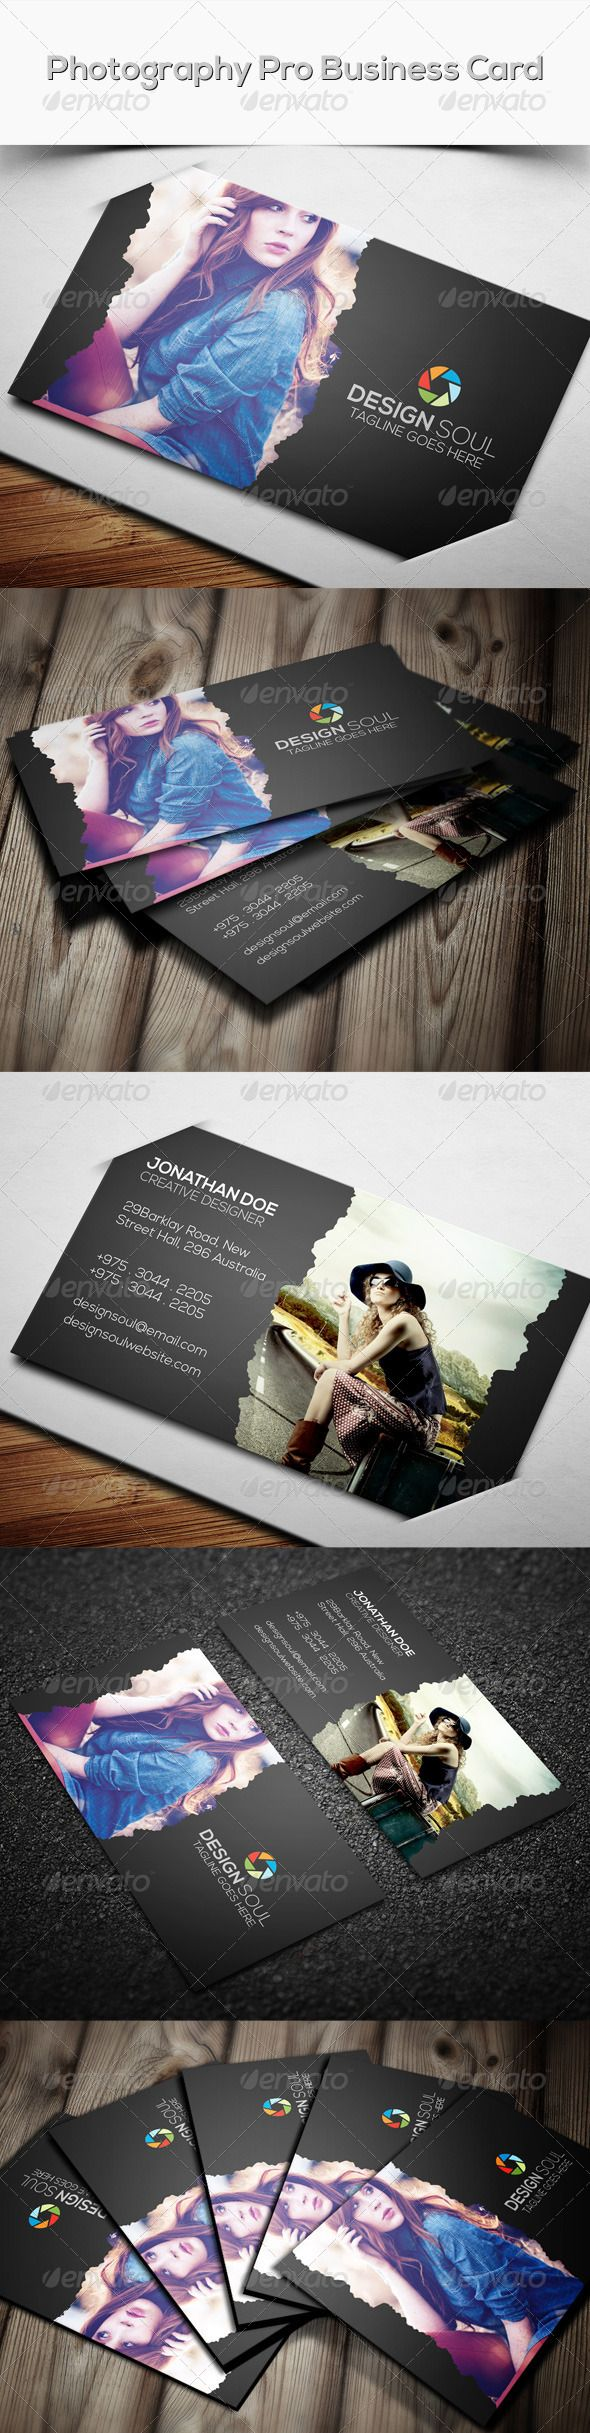 Comfortable 1 Circle Template Thick 10 Best Resumes Round 10 Hour Schedule Templates 10 Steps To Creating An Effective Resume Youthful 10 Words Not To Put On Your Resume Soft100 Dollar Bill Template 23 Best Images About Business Card Template On Pinterest | Logos ..